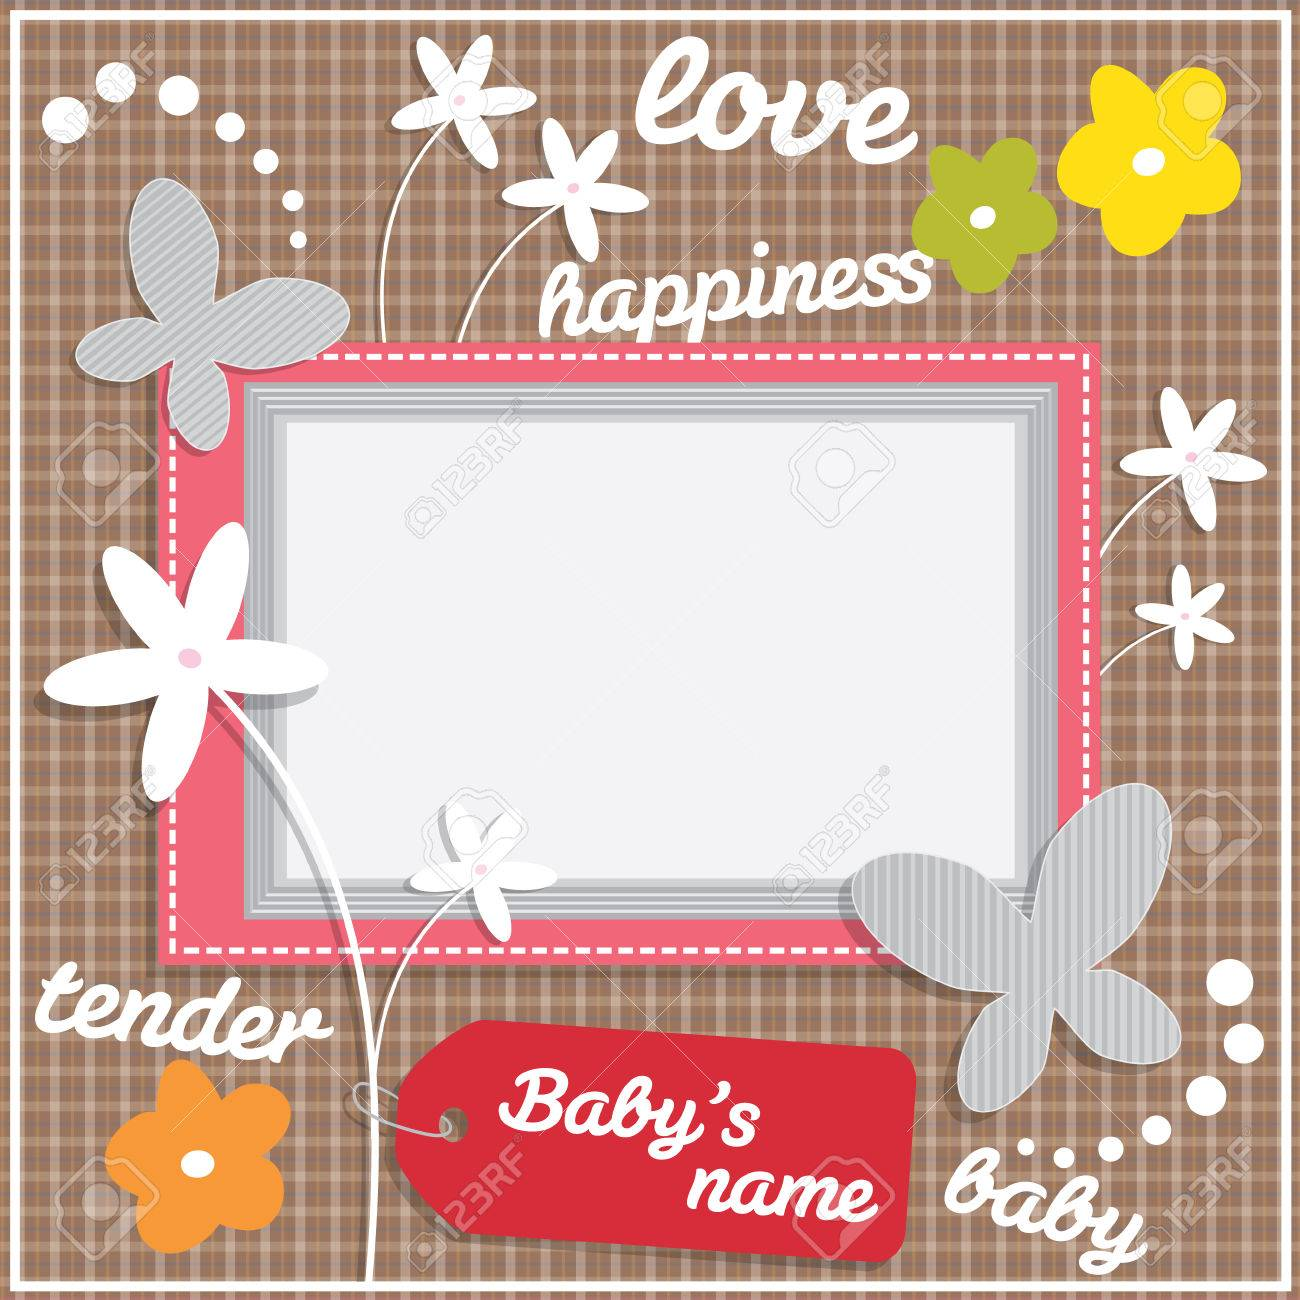 Decorative Template Frame Design For Baby Photo And Memories Royalty Free Cliparts Vectors And Stock Illustration Image 56582591